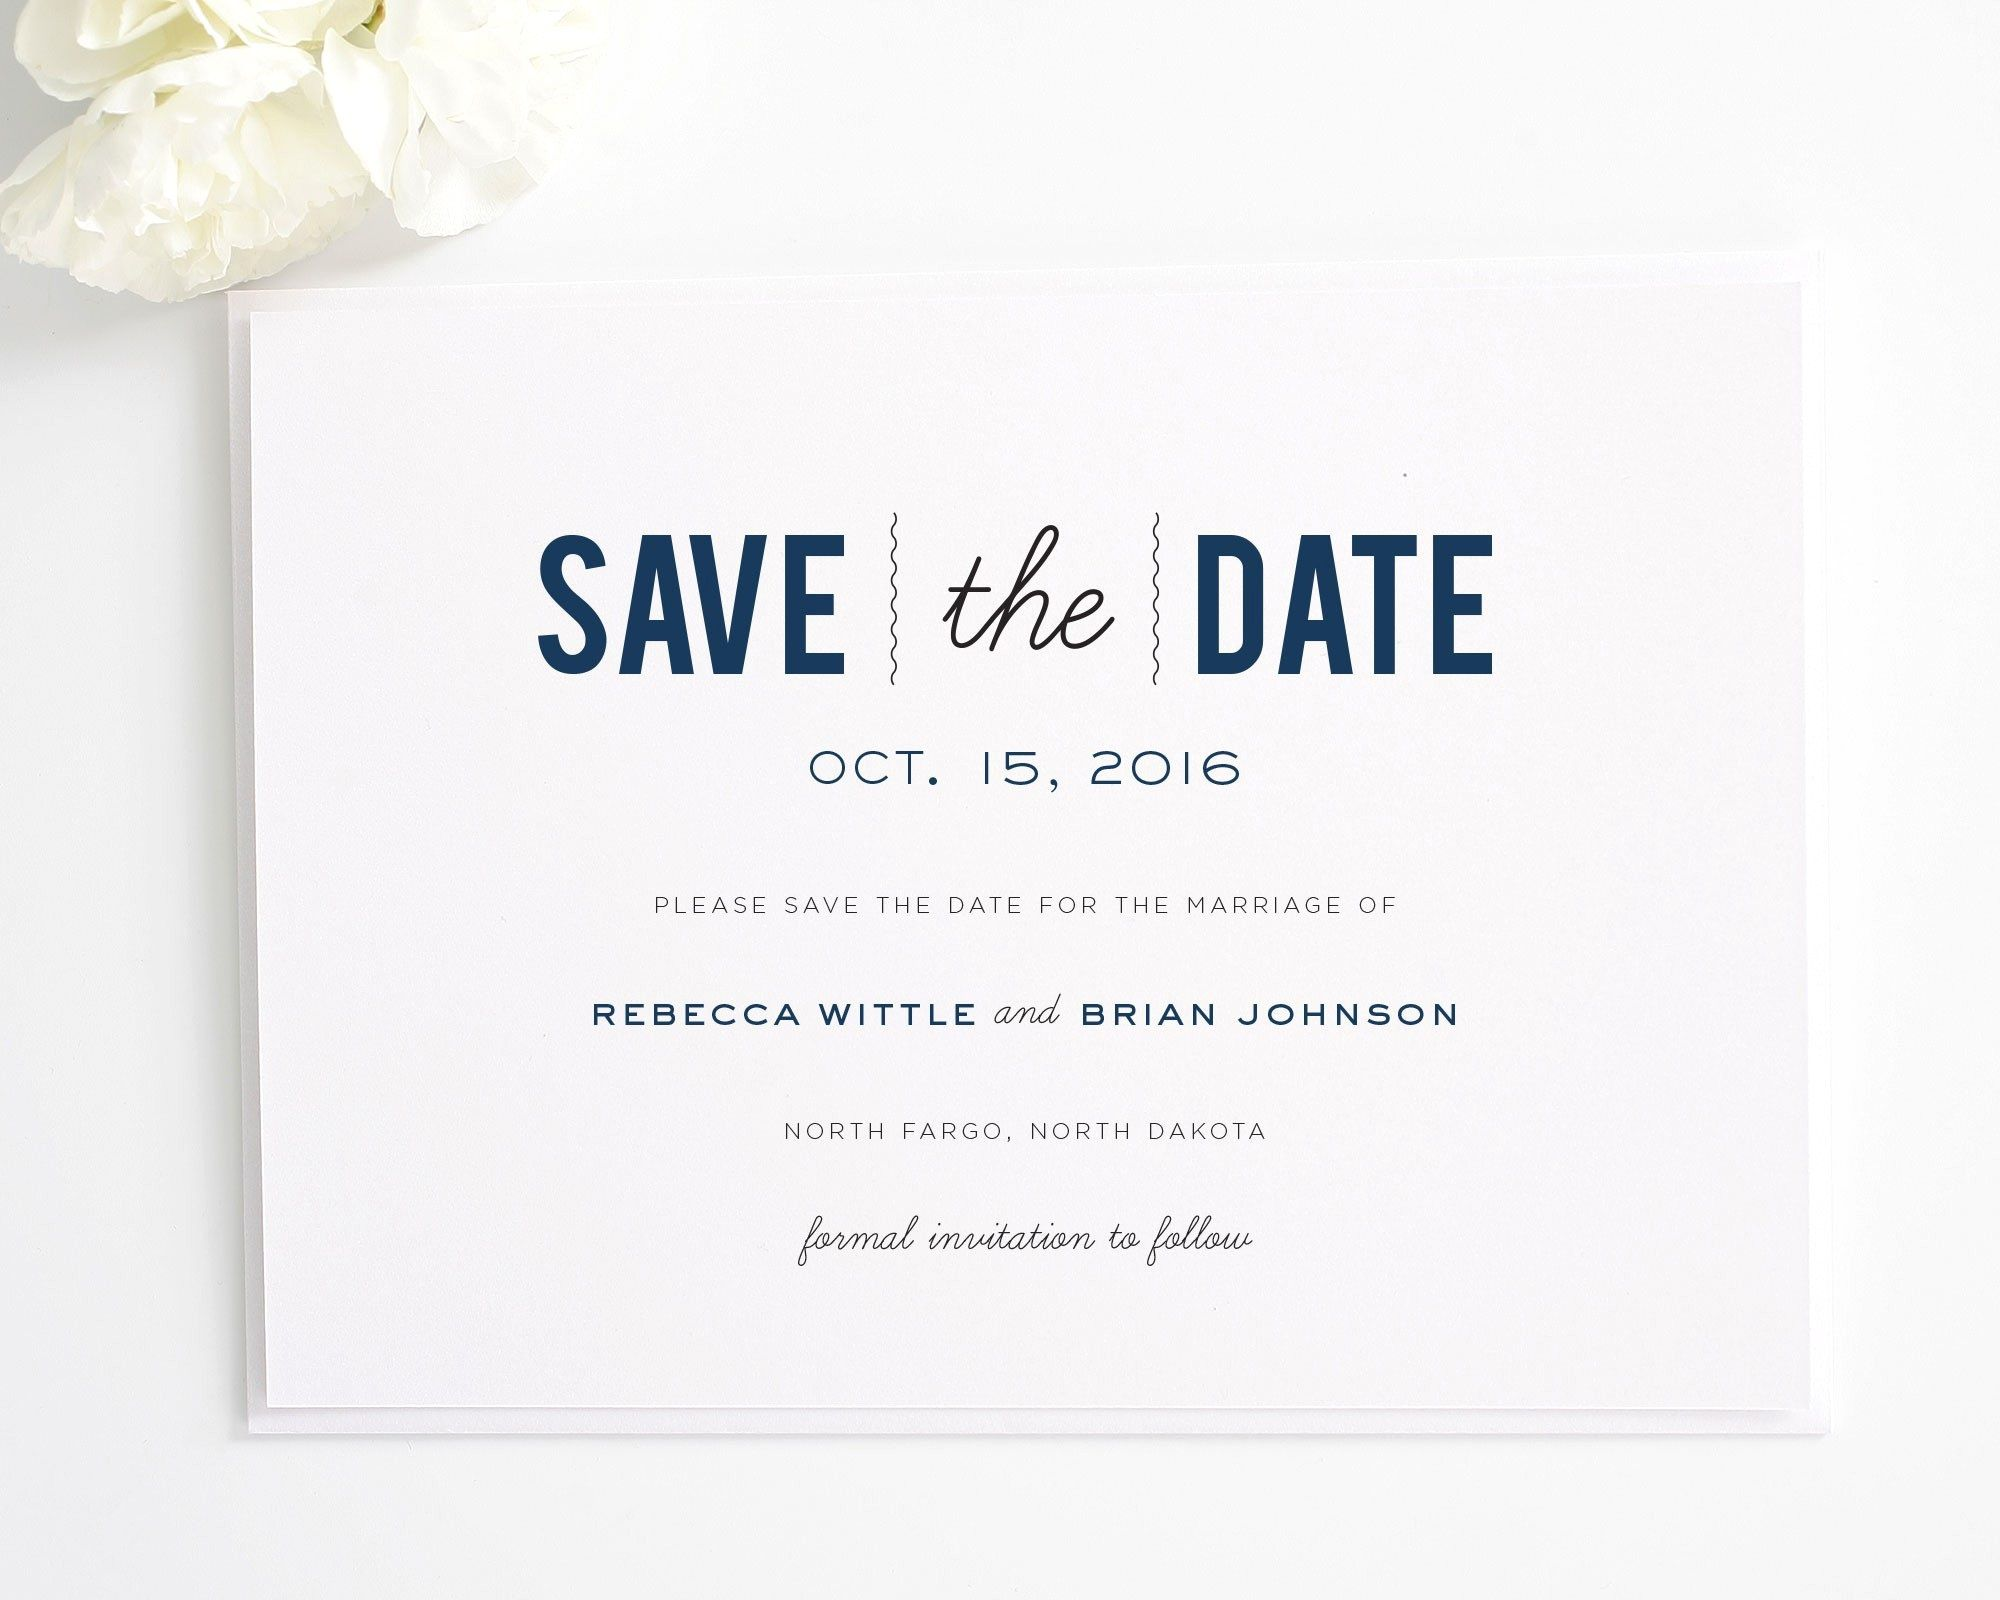 001 Archaicawful Save The Date Template Word Highest Quality  Free Customizable For Holiday PartyFull